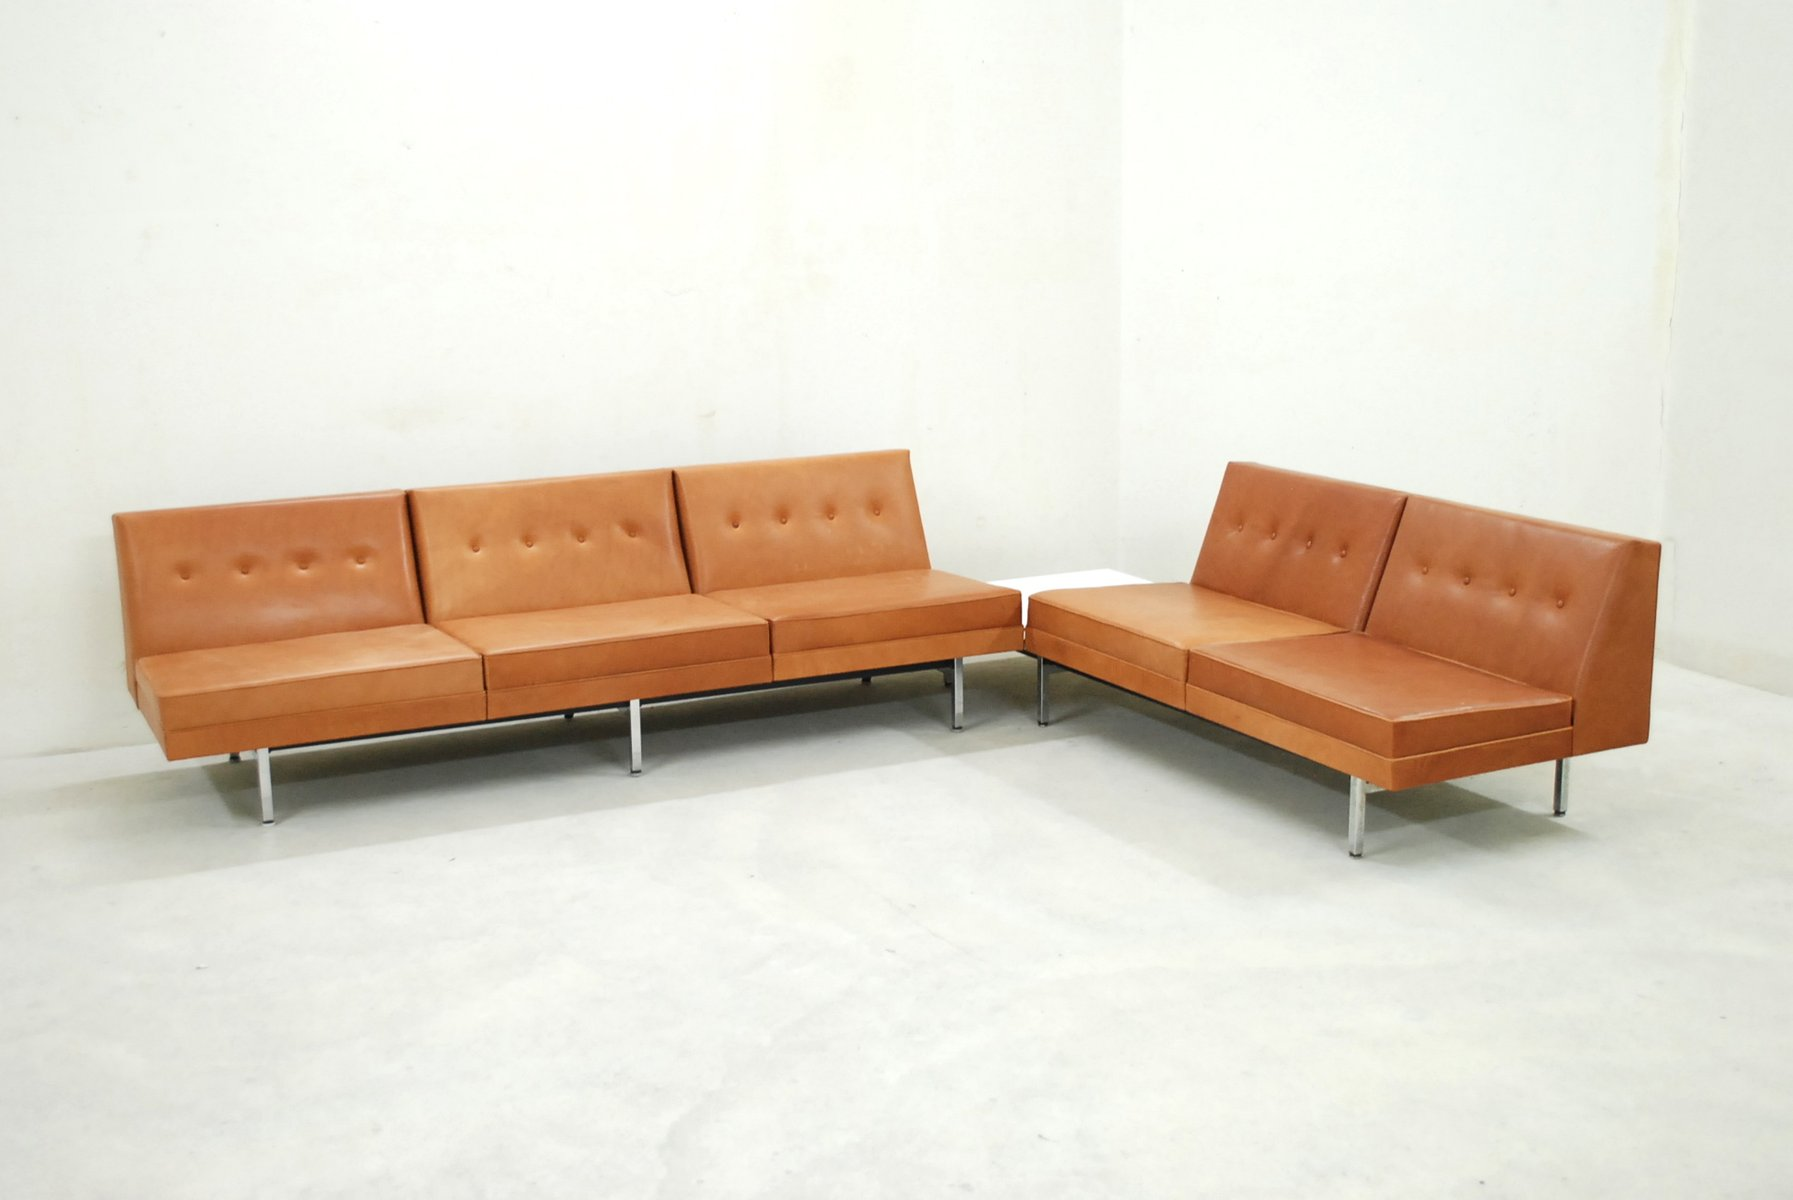 Cognac leather modular sofa set by george nelson for herman miller cognac leather modular sofa set by george nelson for herman miller 1968 parisarafo Choice Image